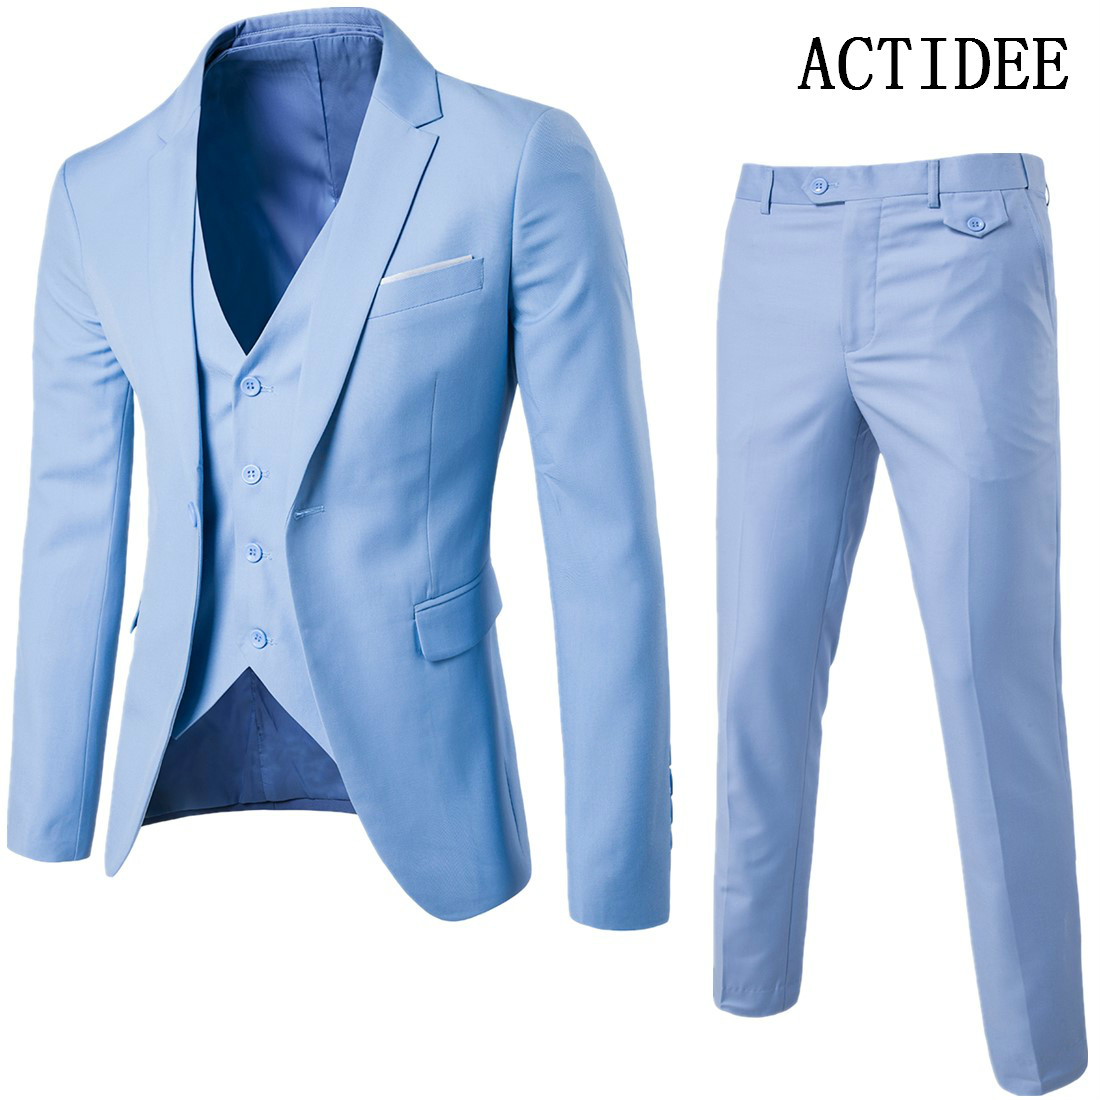 1set=Jacket+Pants+Vests Mens Suits 2018 New Classic Wedding Business ...